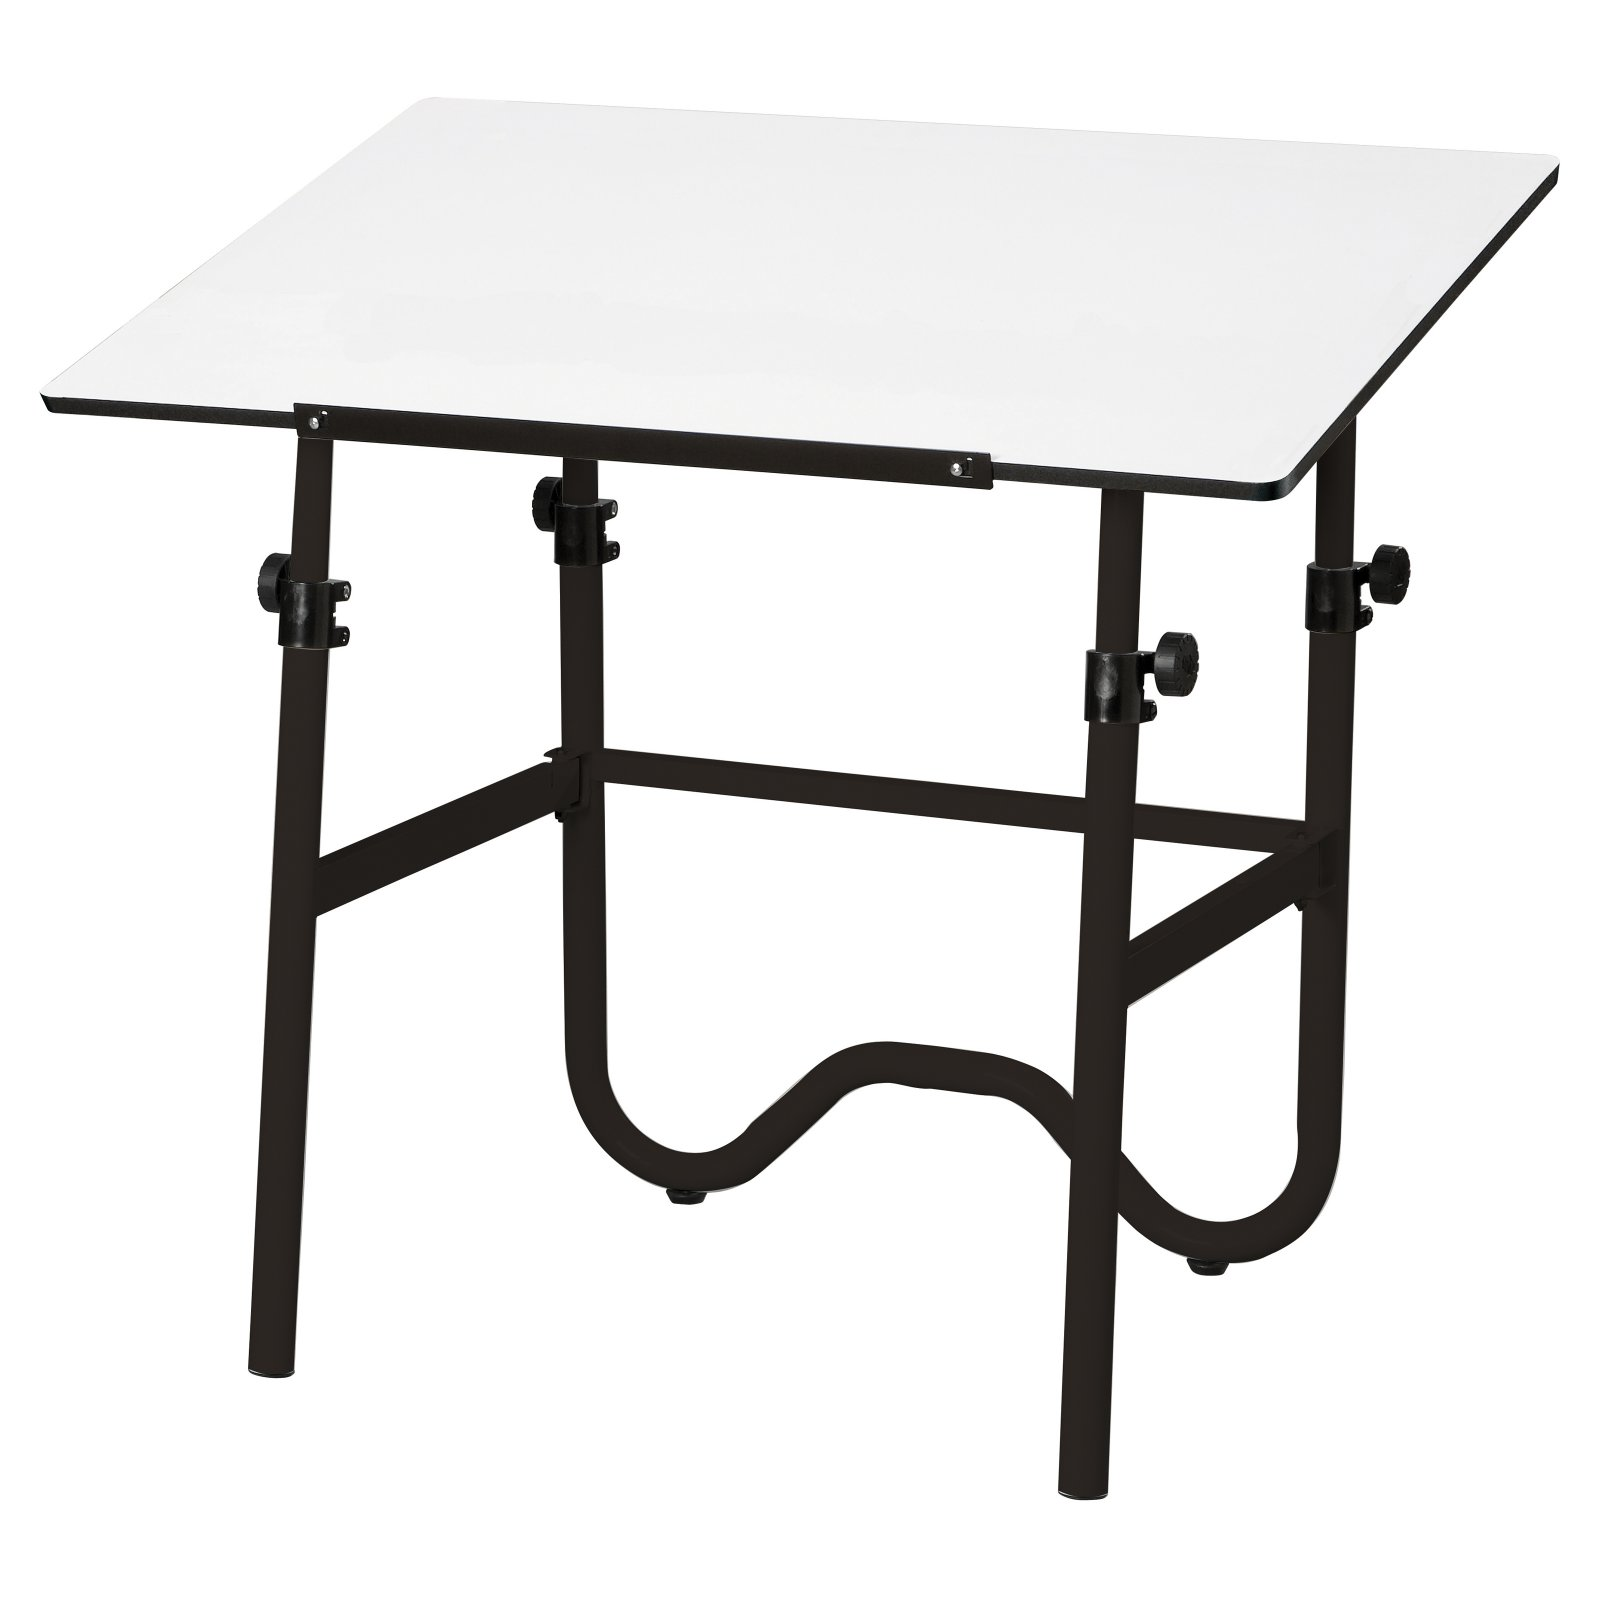 Adjustable Height Drafting Table Alvin Onyx Stow N Go Adjustable Height Drafting Table With Chair